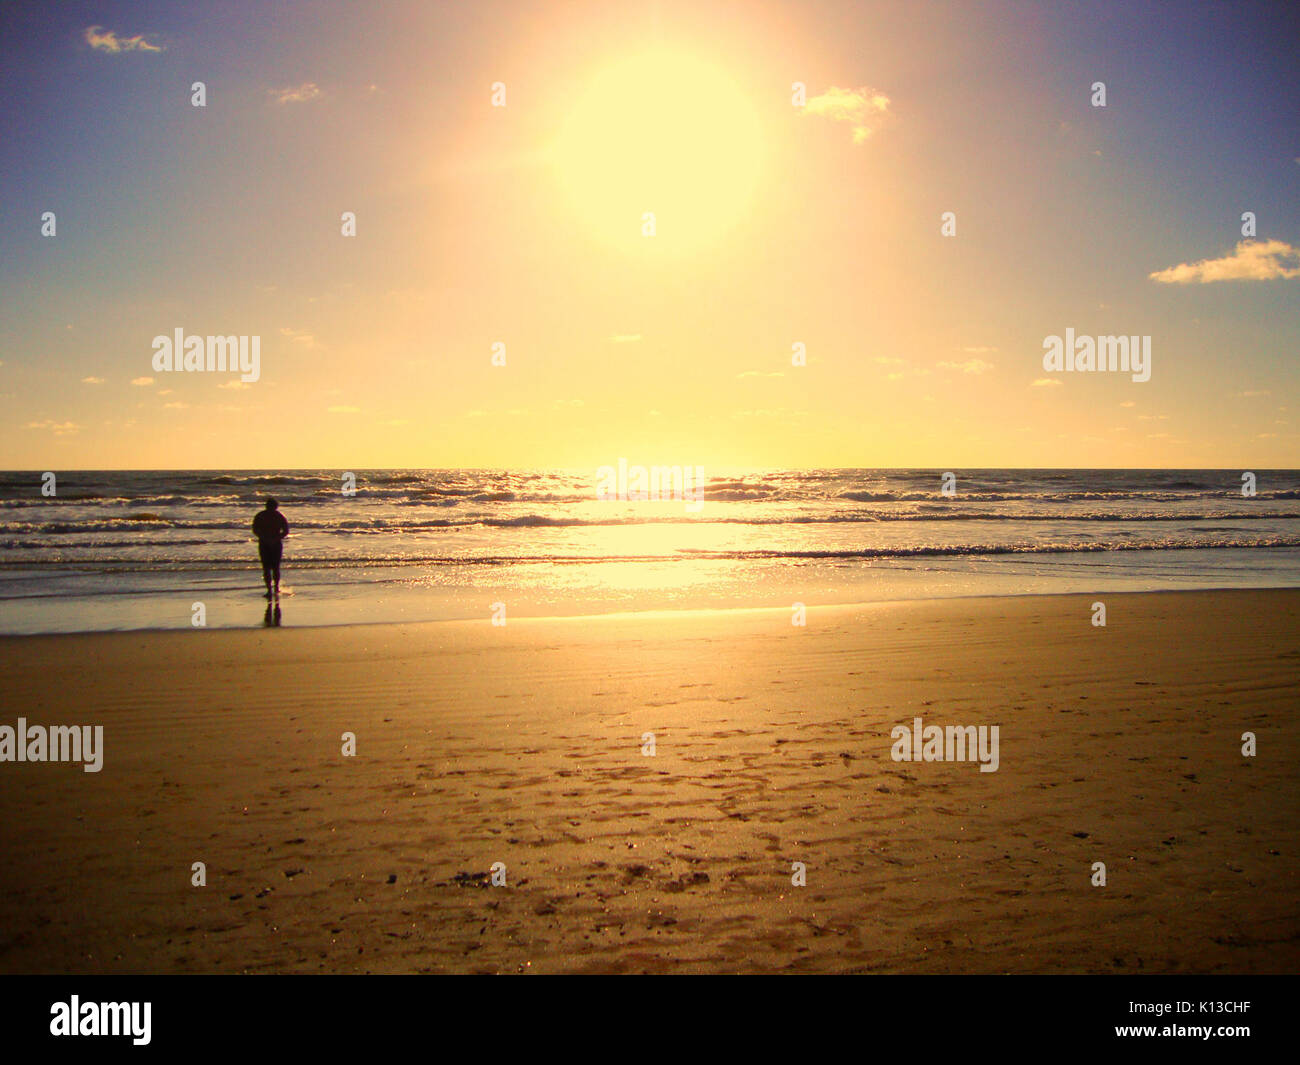 Amanecer Porn Family page 2 - teresita high resolution stock photography and